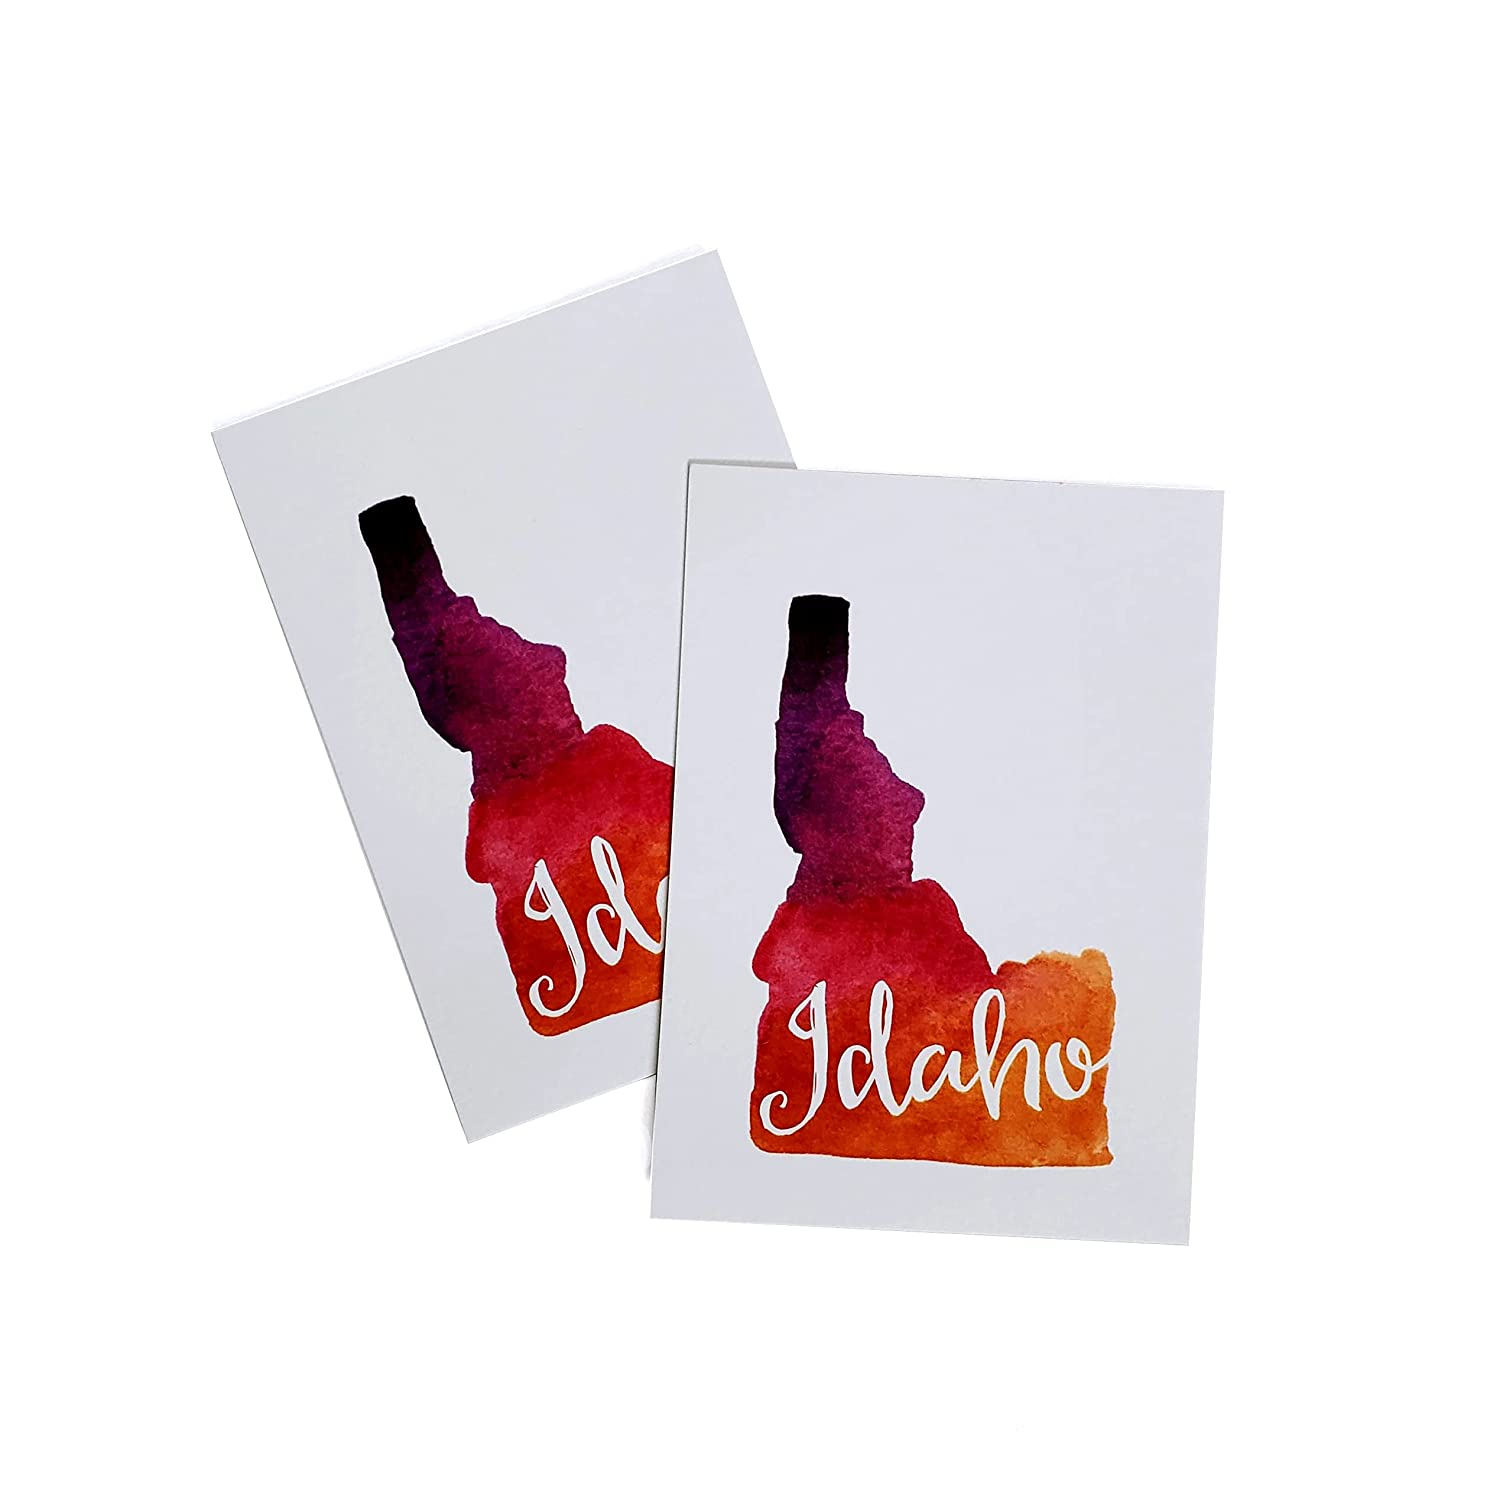 Idaho High quality new tag water Boston Mall color 6 tags eco-friend gift letterpress pack